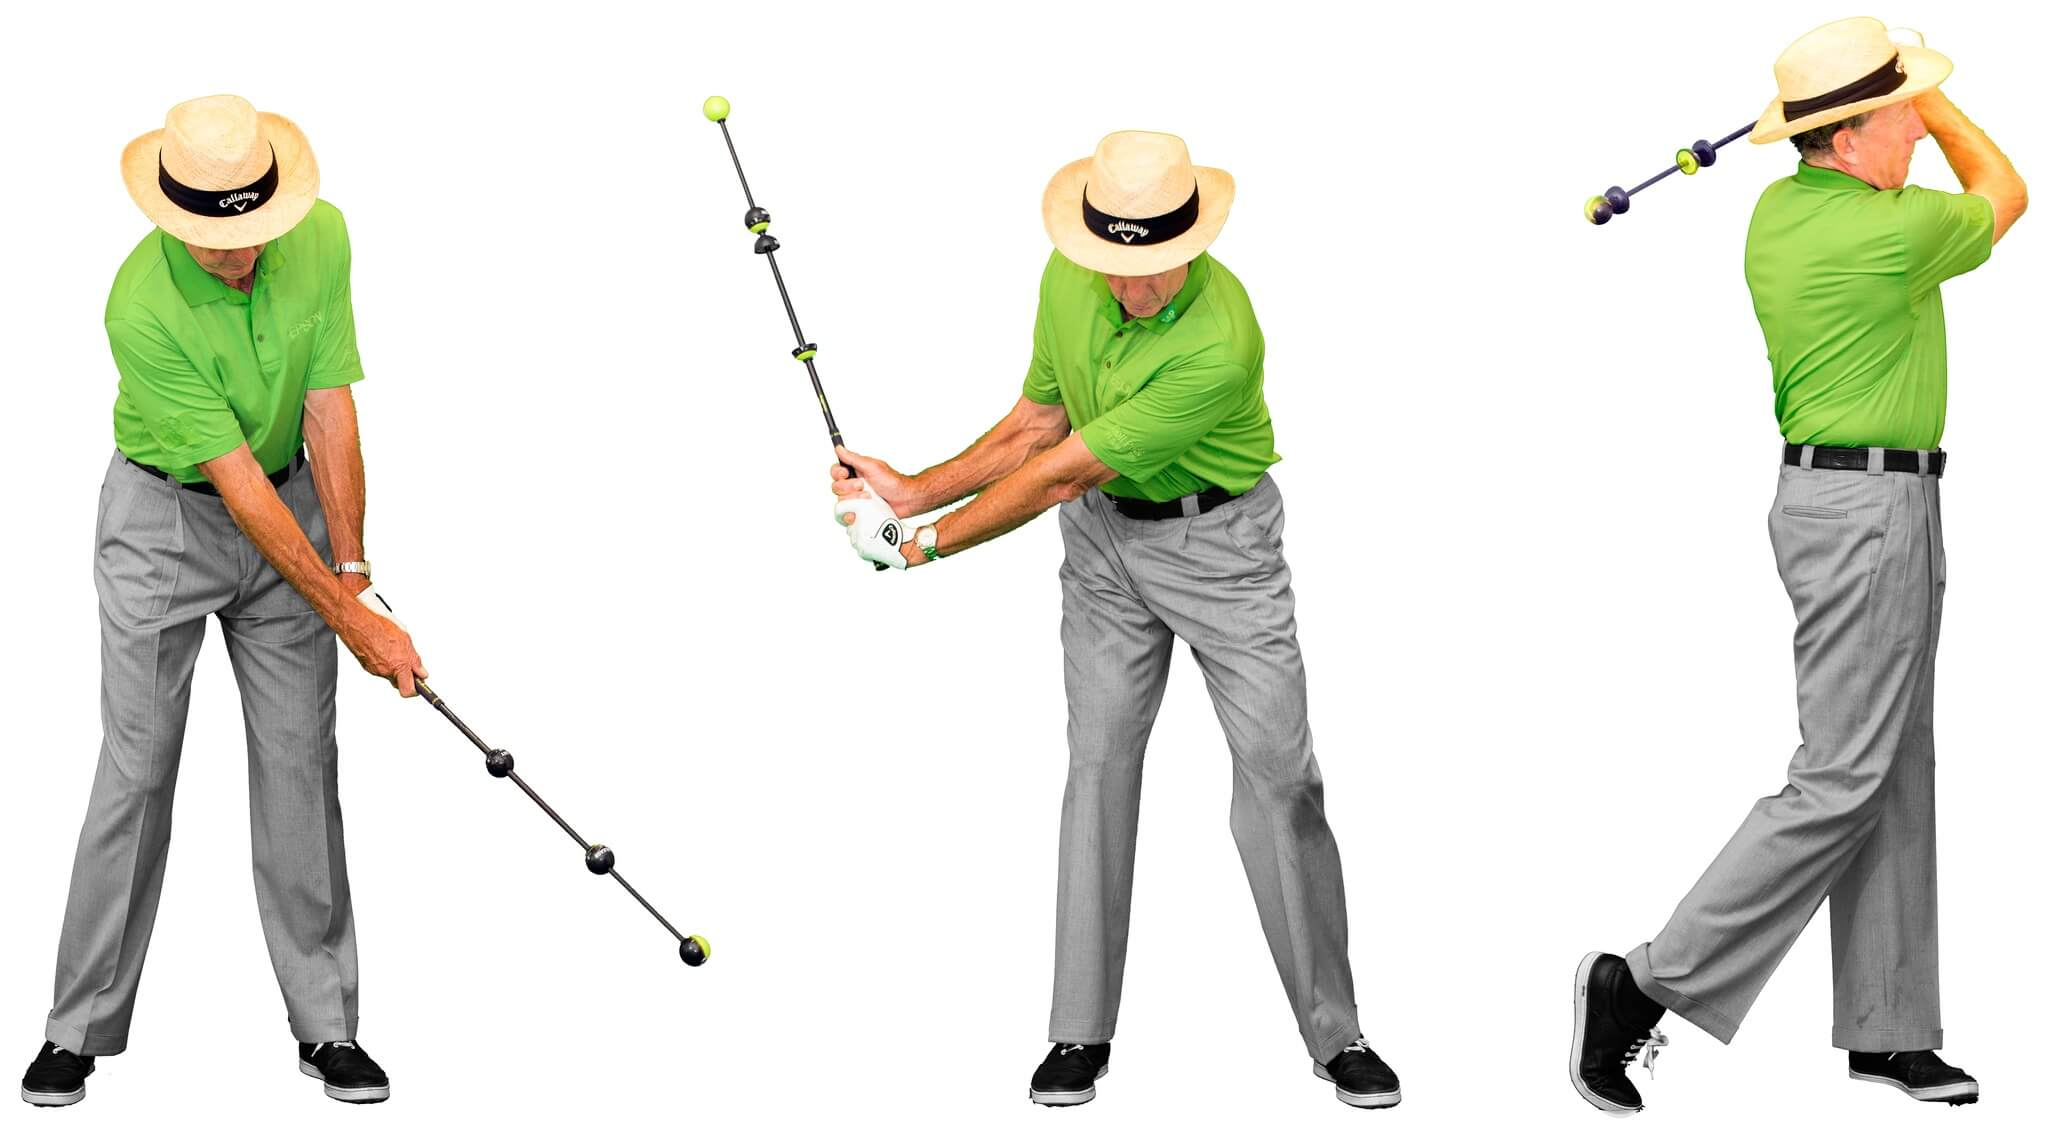 aids training golfnewsnetteam golfer best compressor orange for dst the gsa whip golf every swing